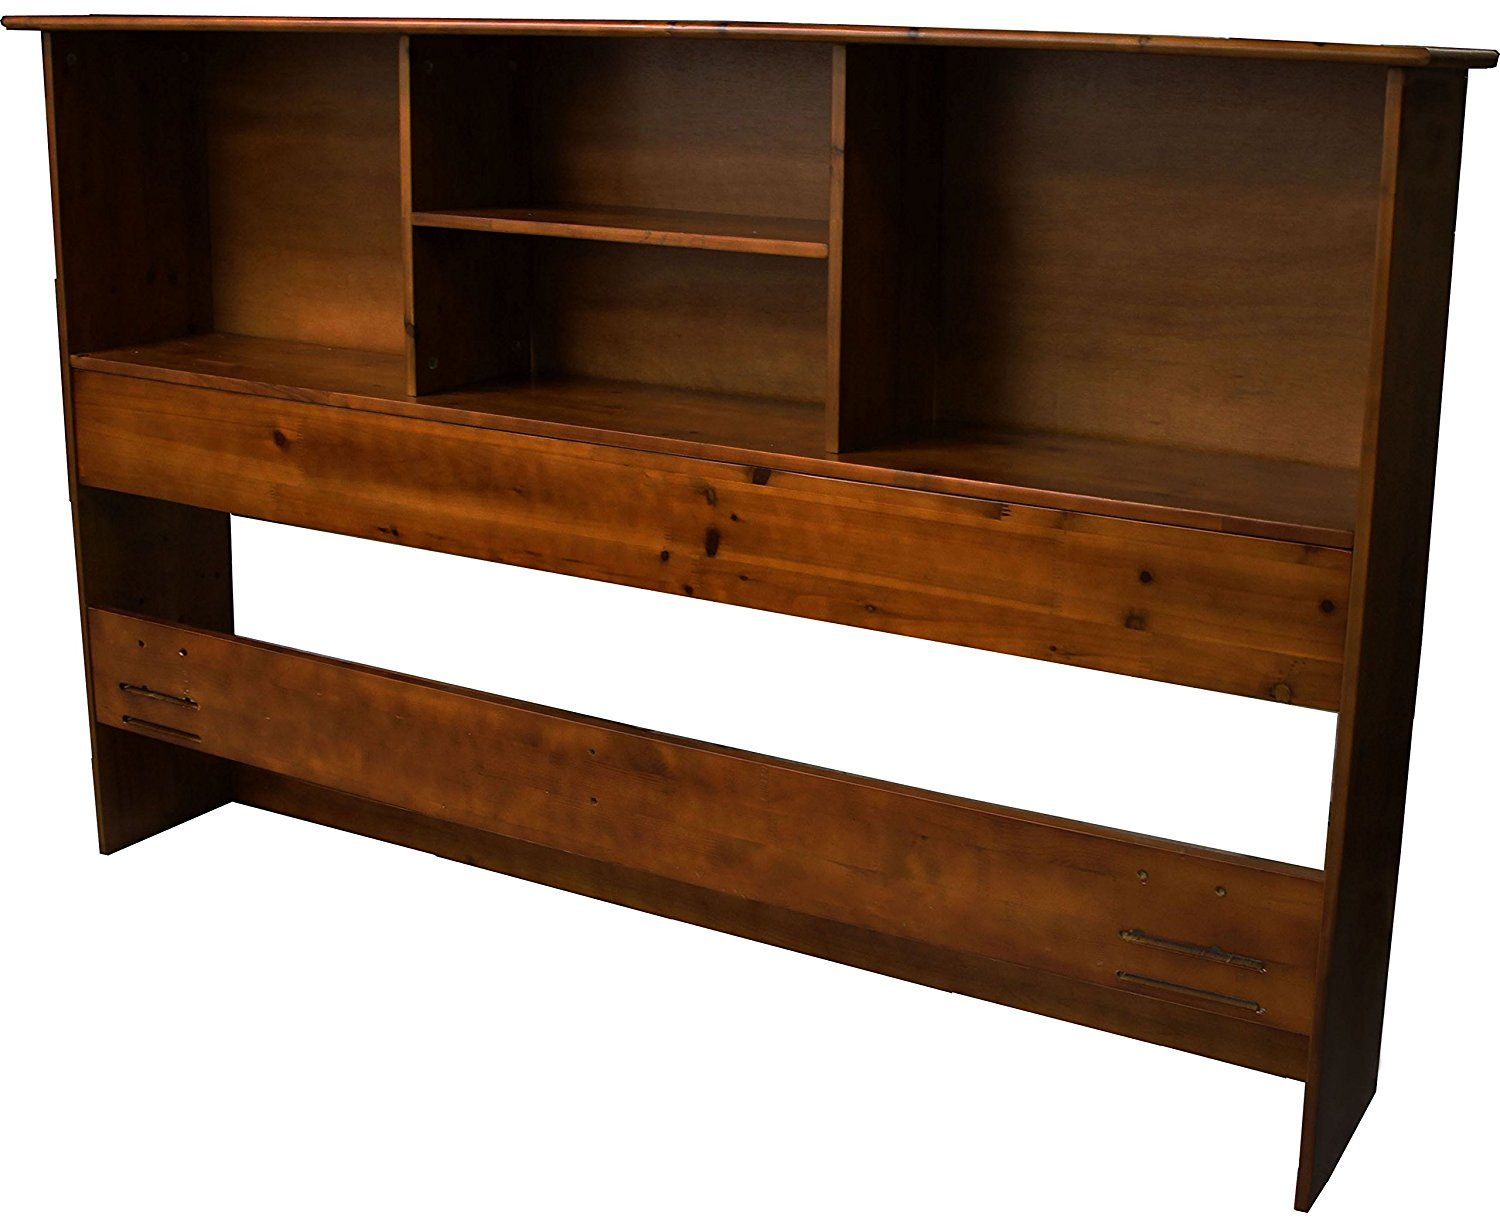 Amazon Epic Furnishings Stockholm Bamboo Solid Bookcase Headboard King Size Walnut Poor Reviews For Assem Bookcase Headboard Wood Bookcase Headboard Styles